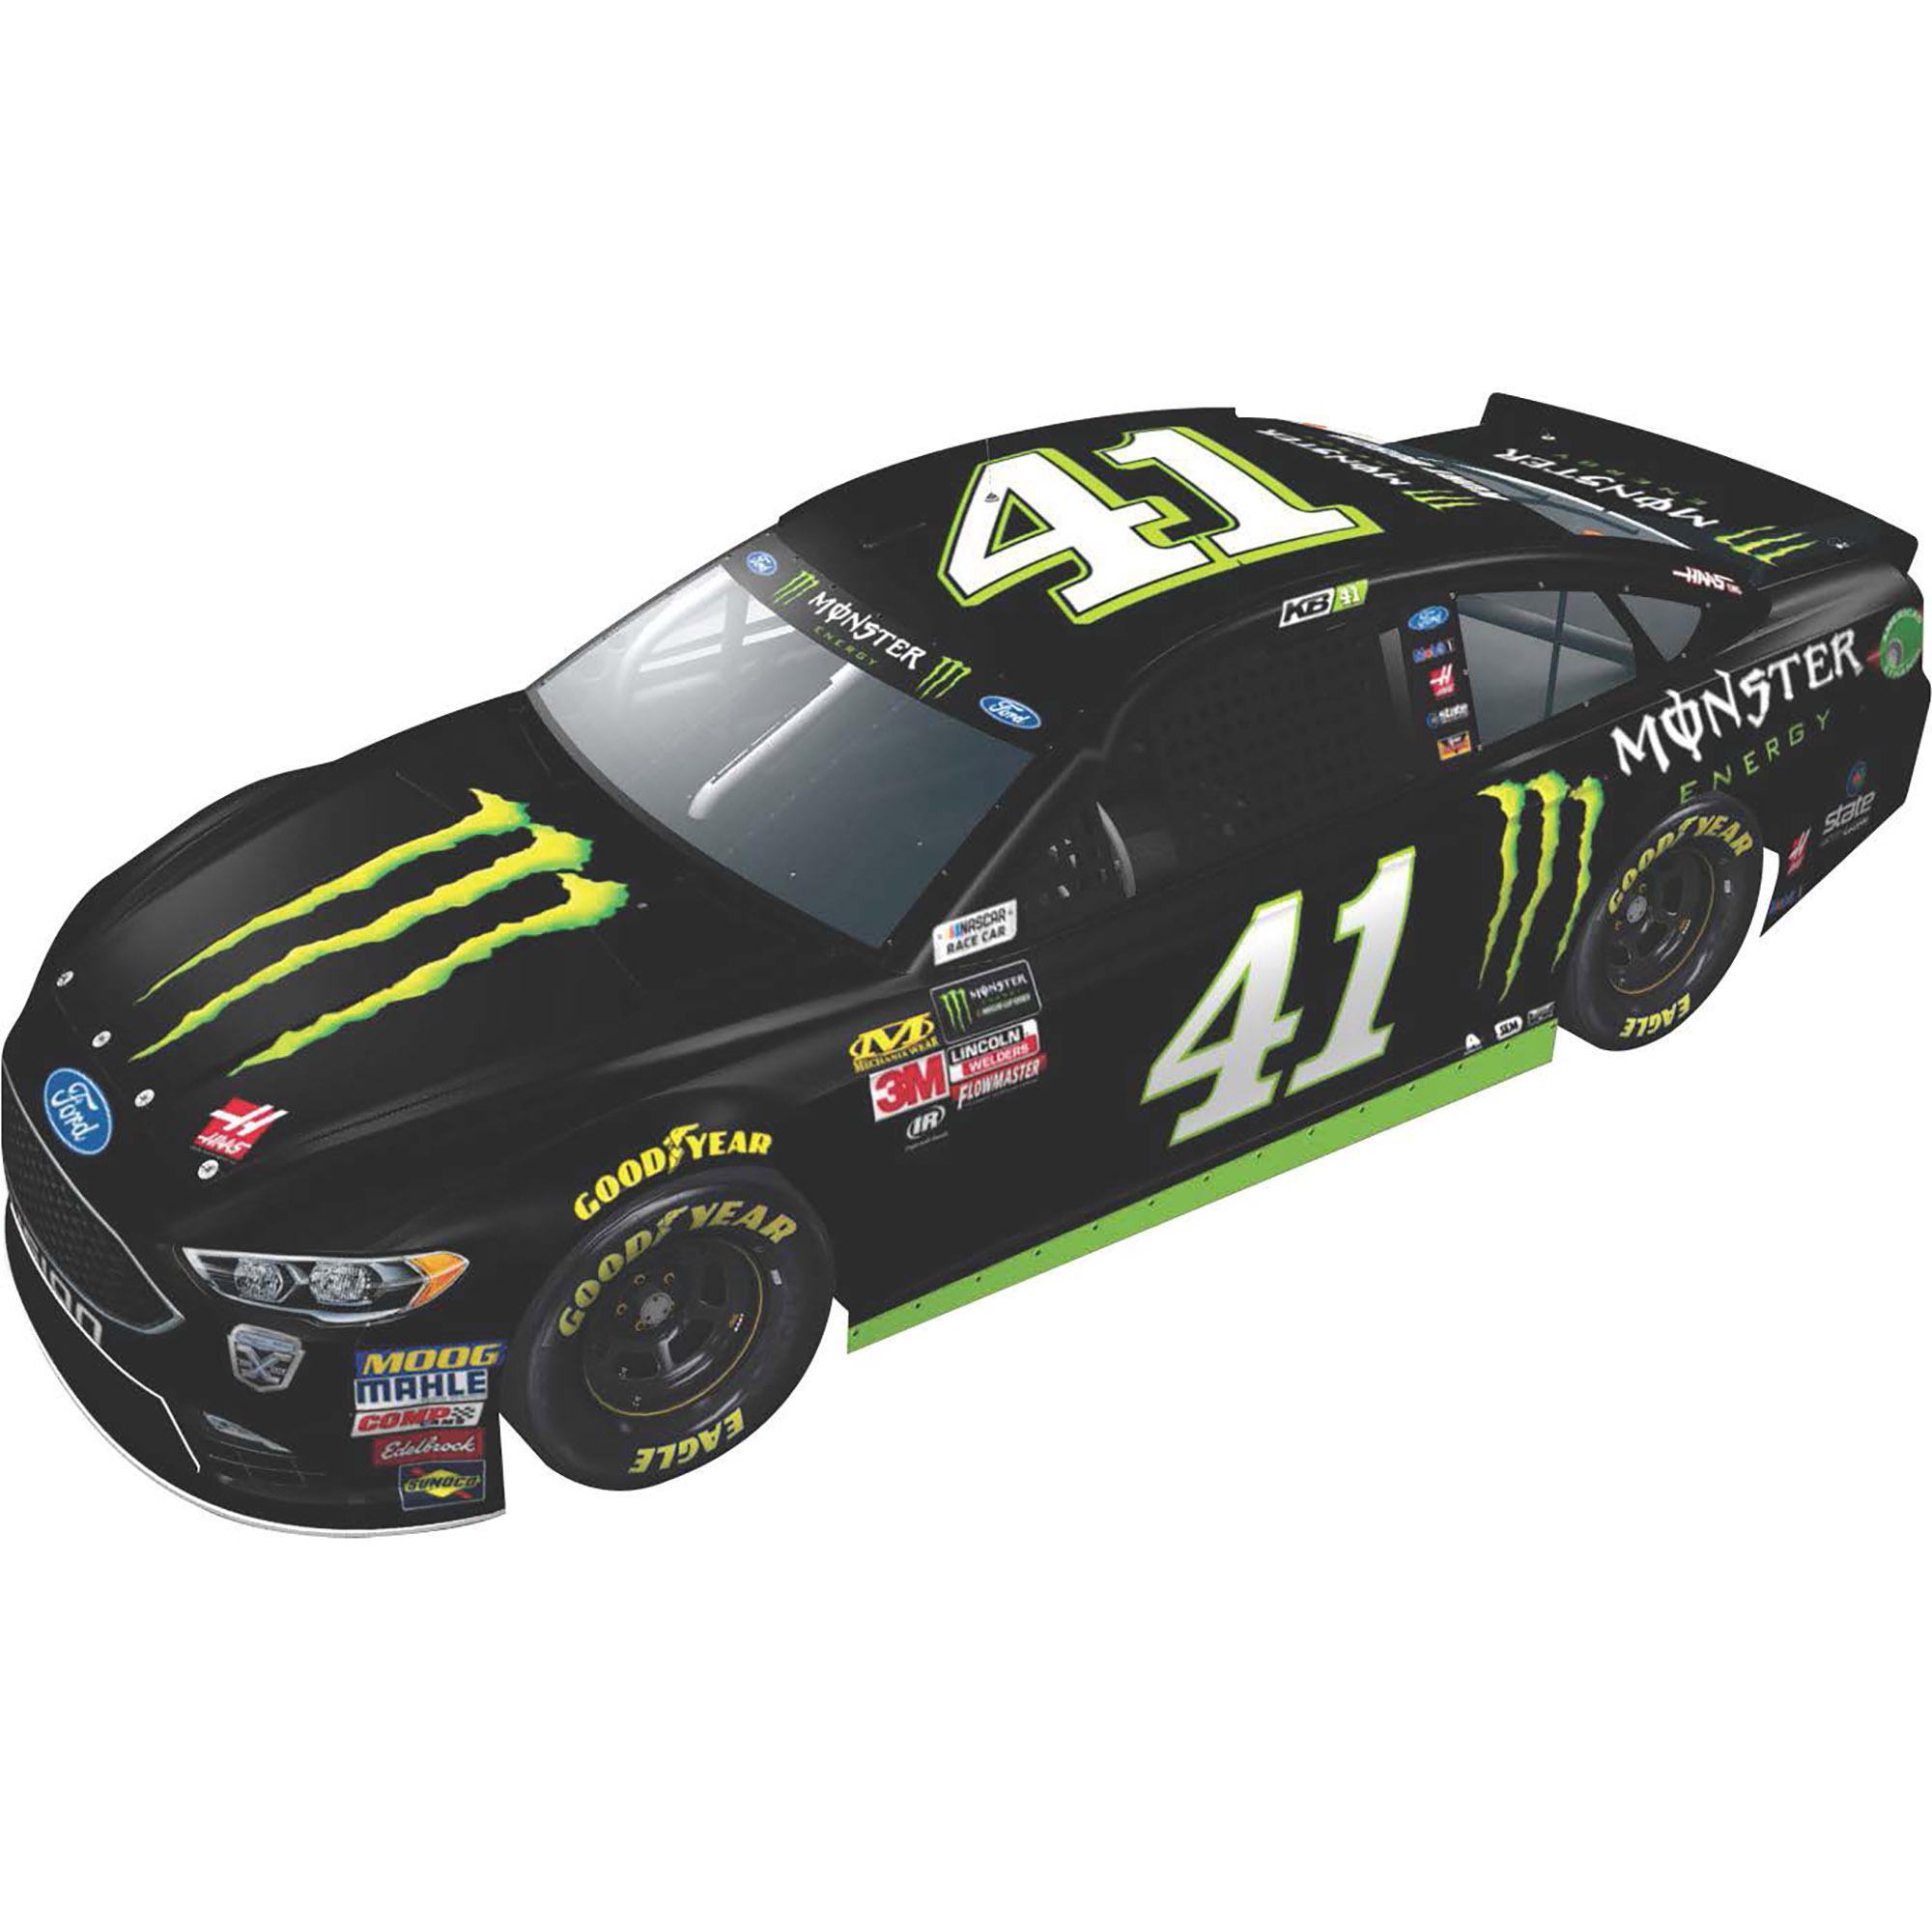 Lionel Racing Kurt Busch #41 Monster Energy 2018 Ford Fusion 1:24 Scale HO Die-cast